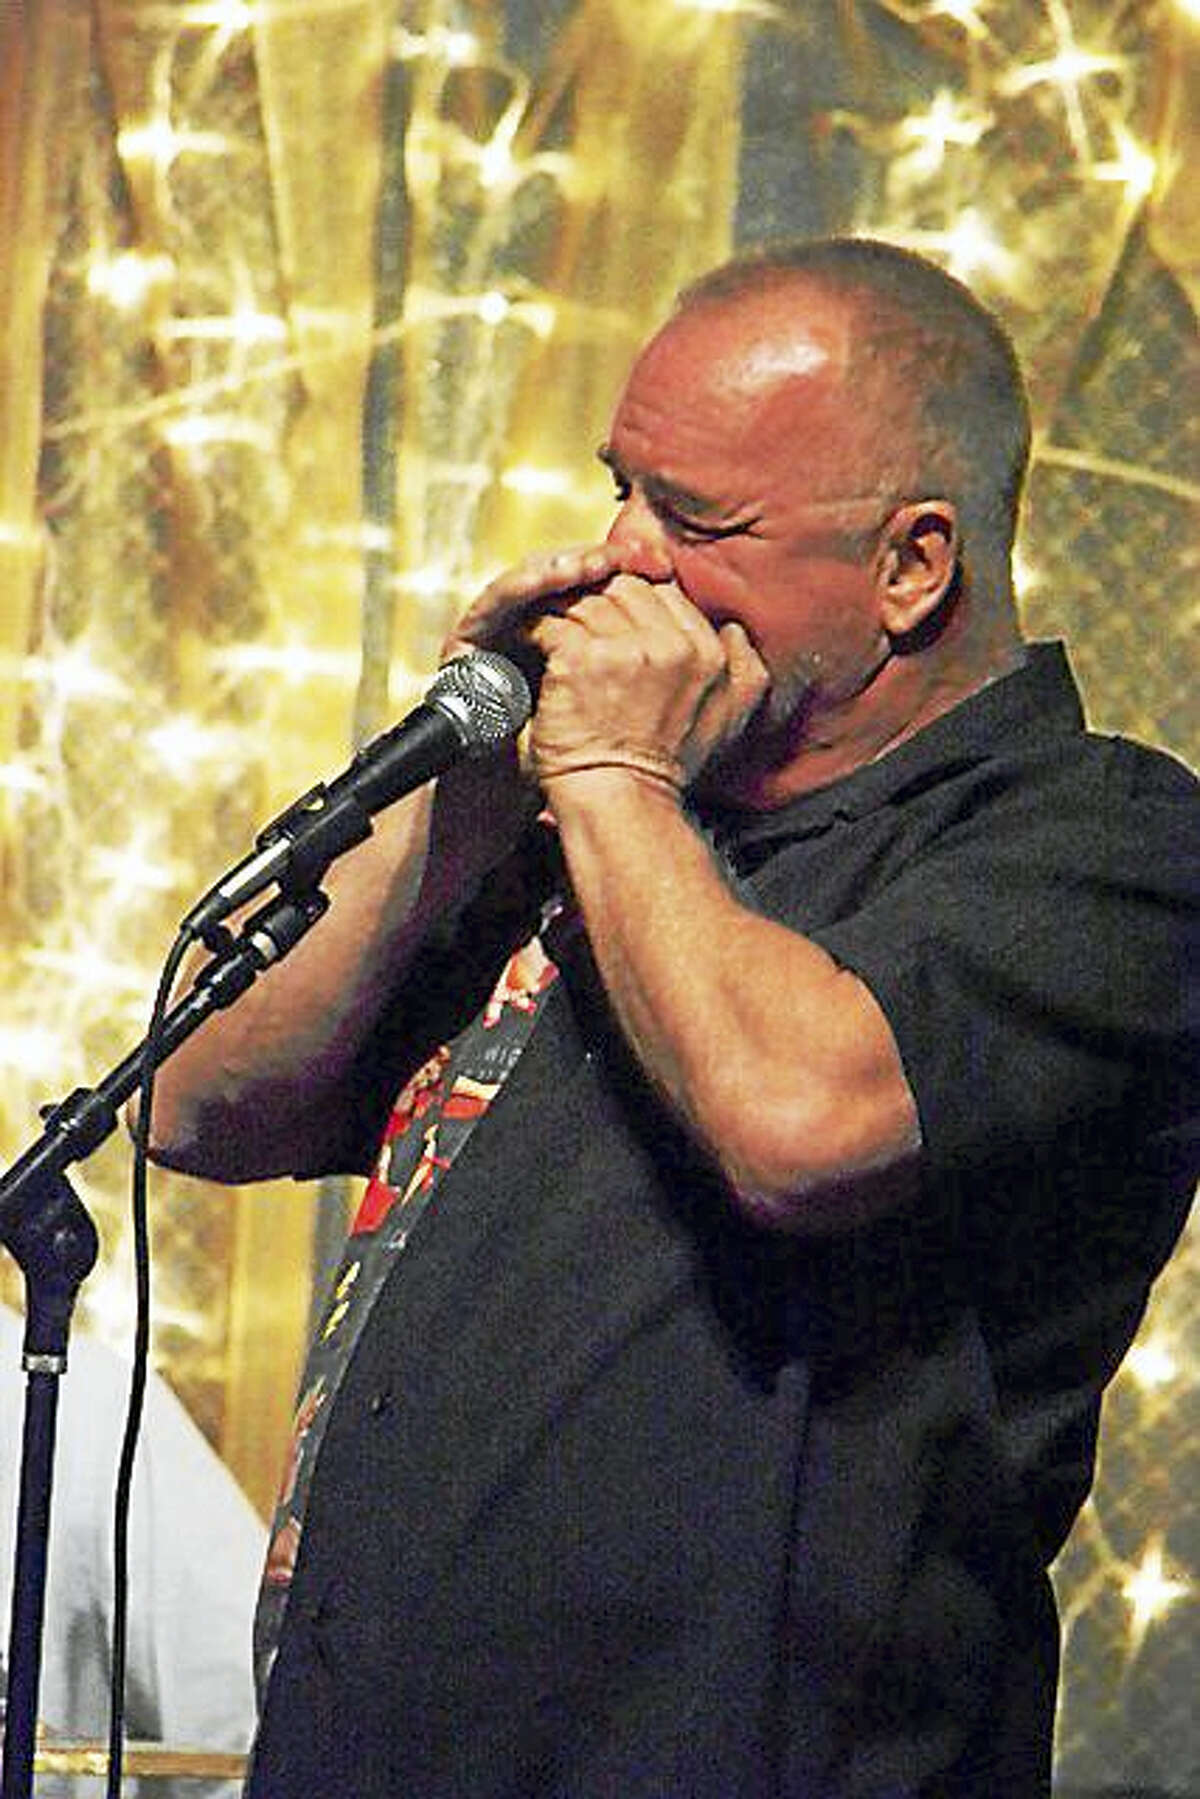 Mike Crandall plays the Blues Blizzard Saturday. The event is being hosted by the Hannon-Hatch VFW Post 9929 in West Hartford.